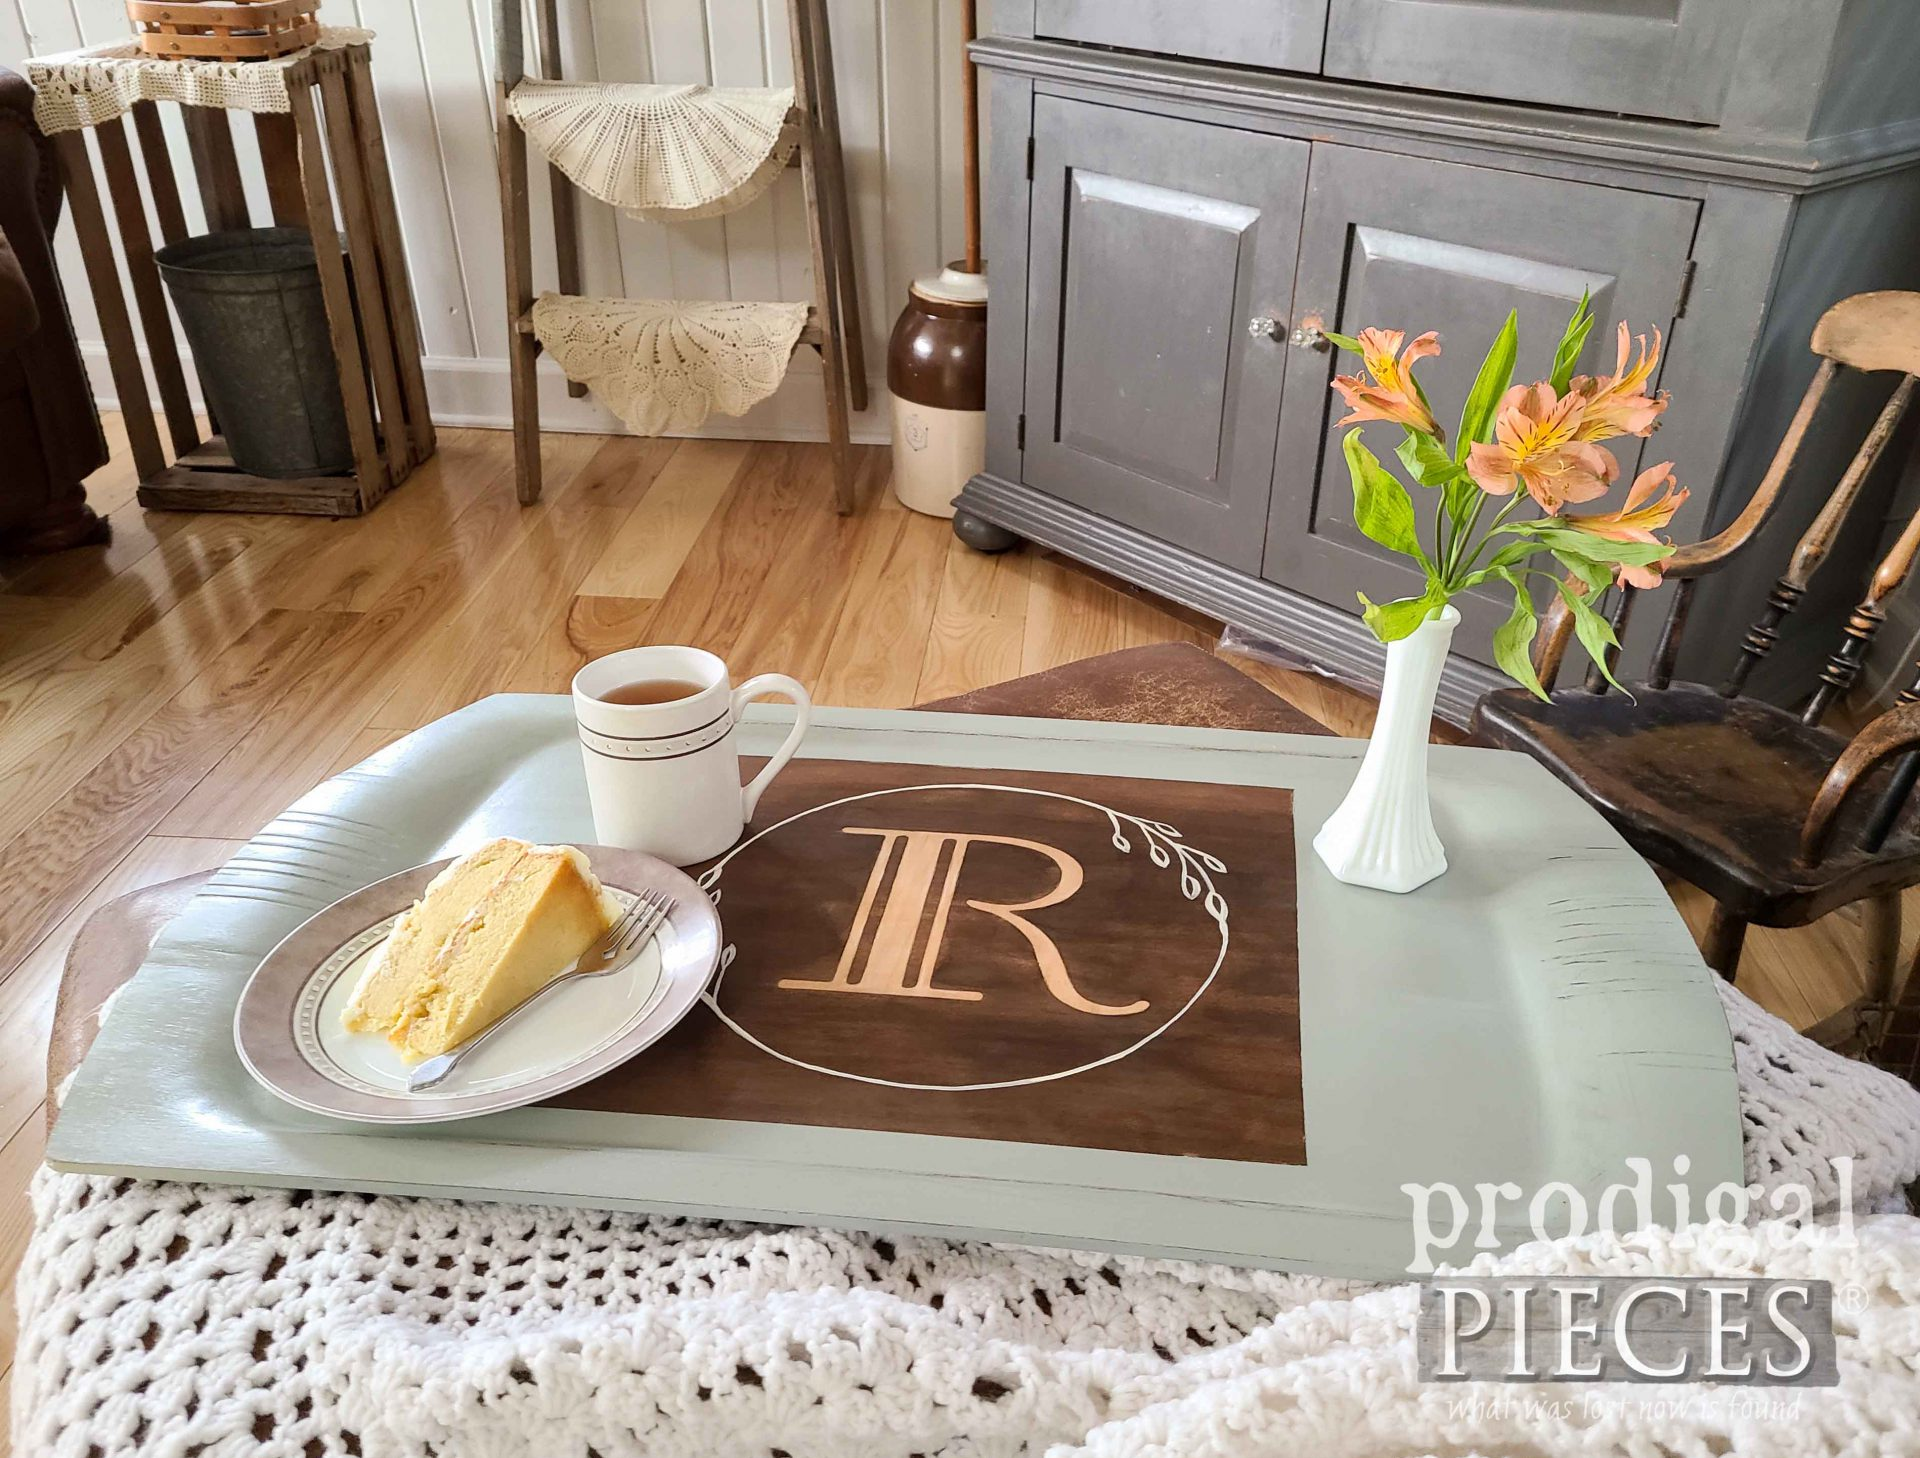 Modern Farmhouse Wooden Tray with Updated Style by Larissa of Prodigal Pieces | prodigalpieces.com #prodigalpieces #vintage #home #homedecor #farmhouse